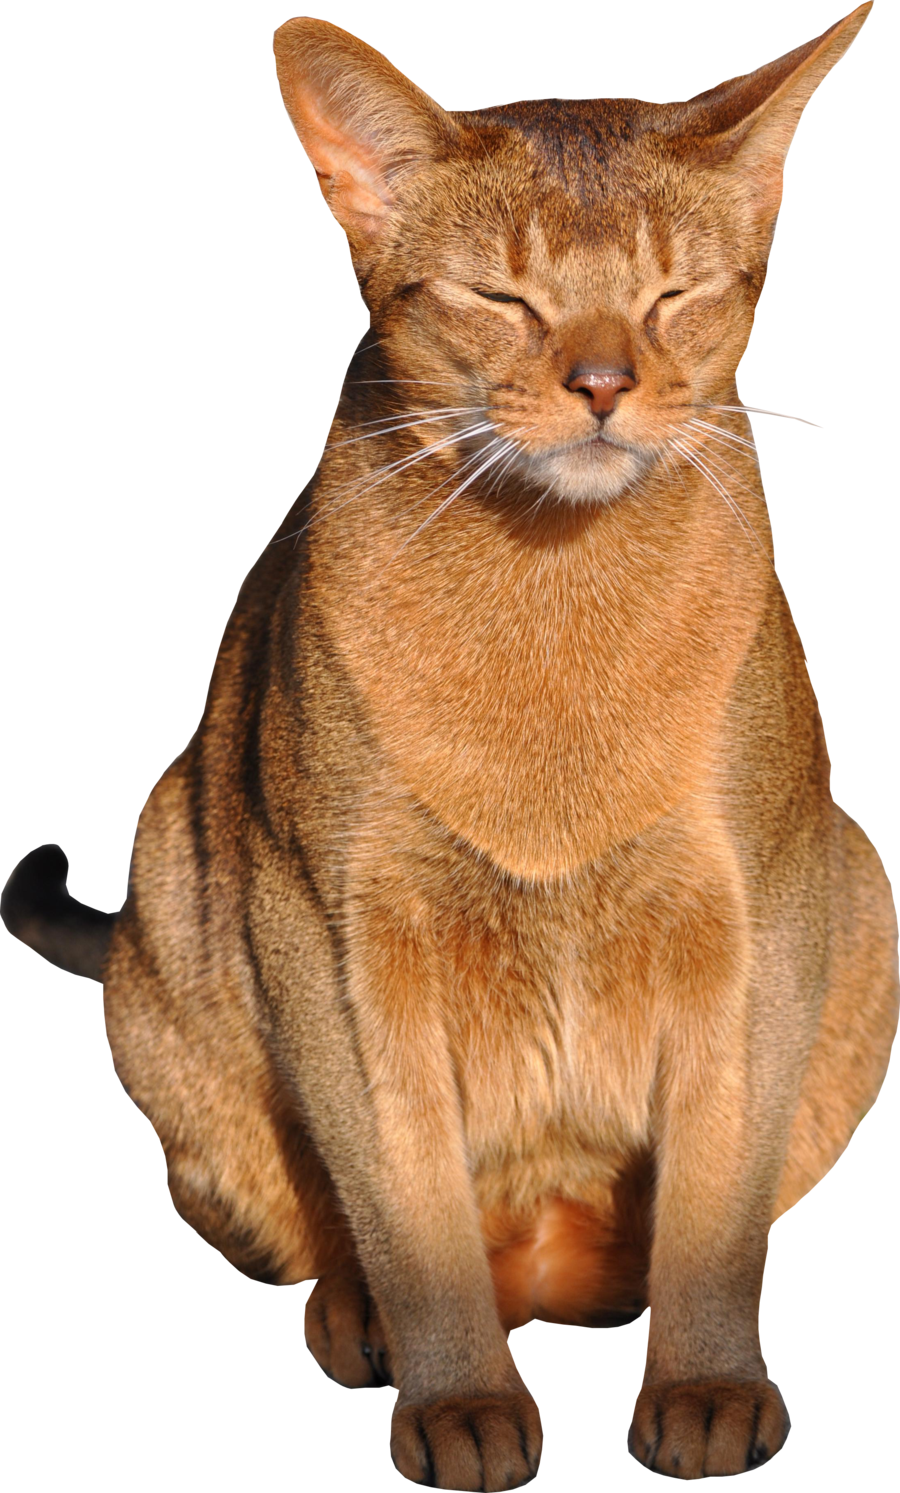 Png with by meinlilapark. Clipart cat transparent background